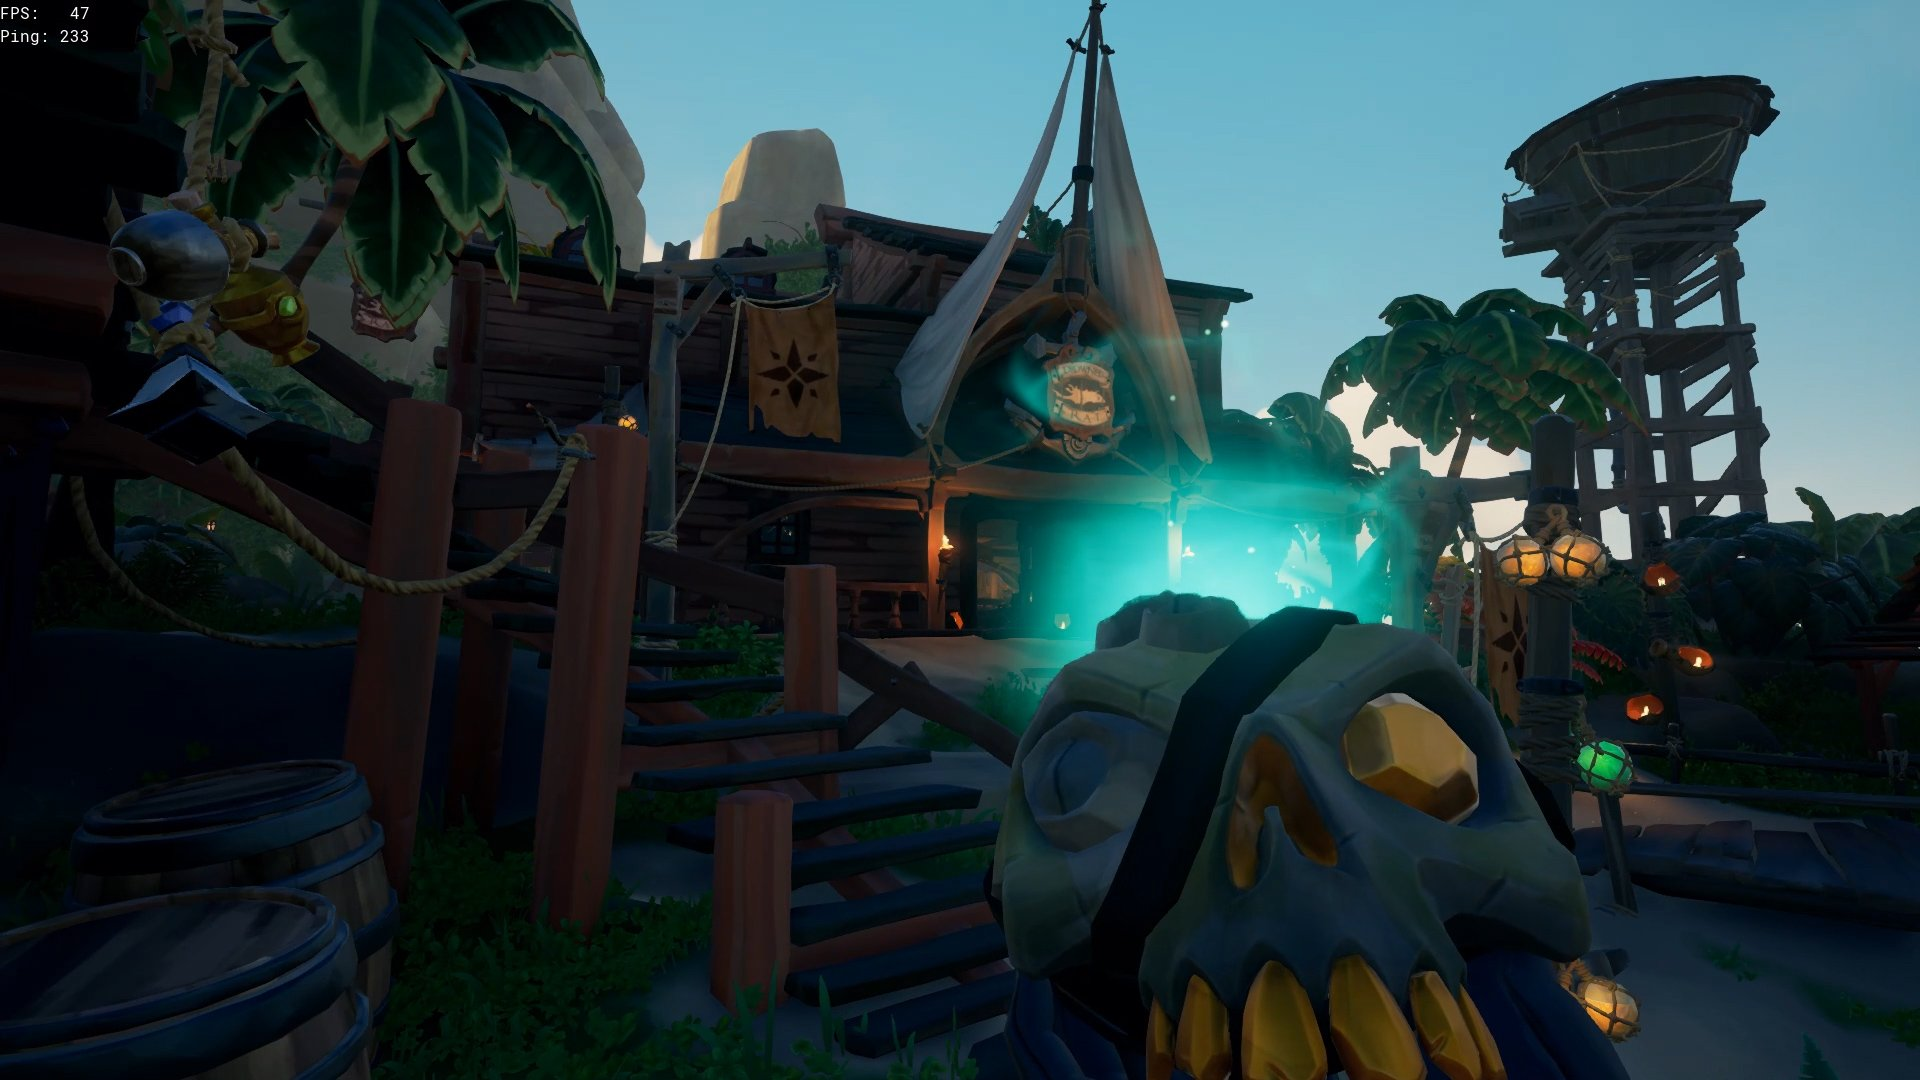 https://d1lss44hh2trtw.cloudfront.net/assets/editorial/2018/08/skeleton-ship-skeleton-captain-skull-sea-of-thieves.jpg